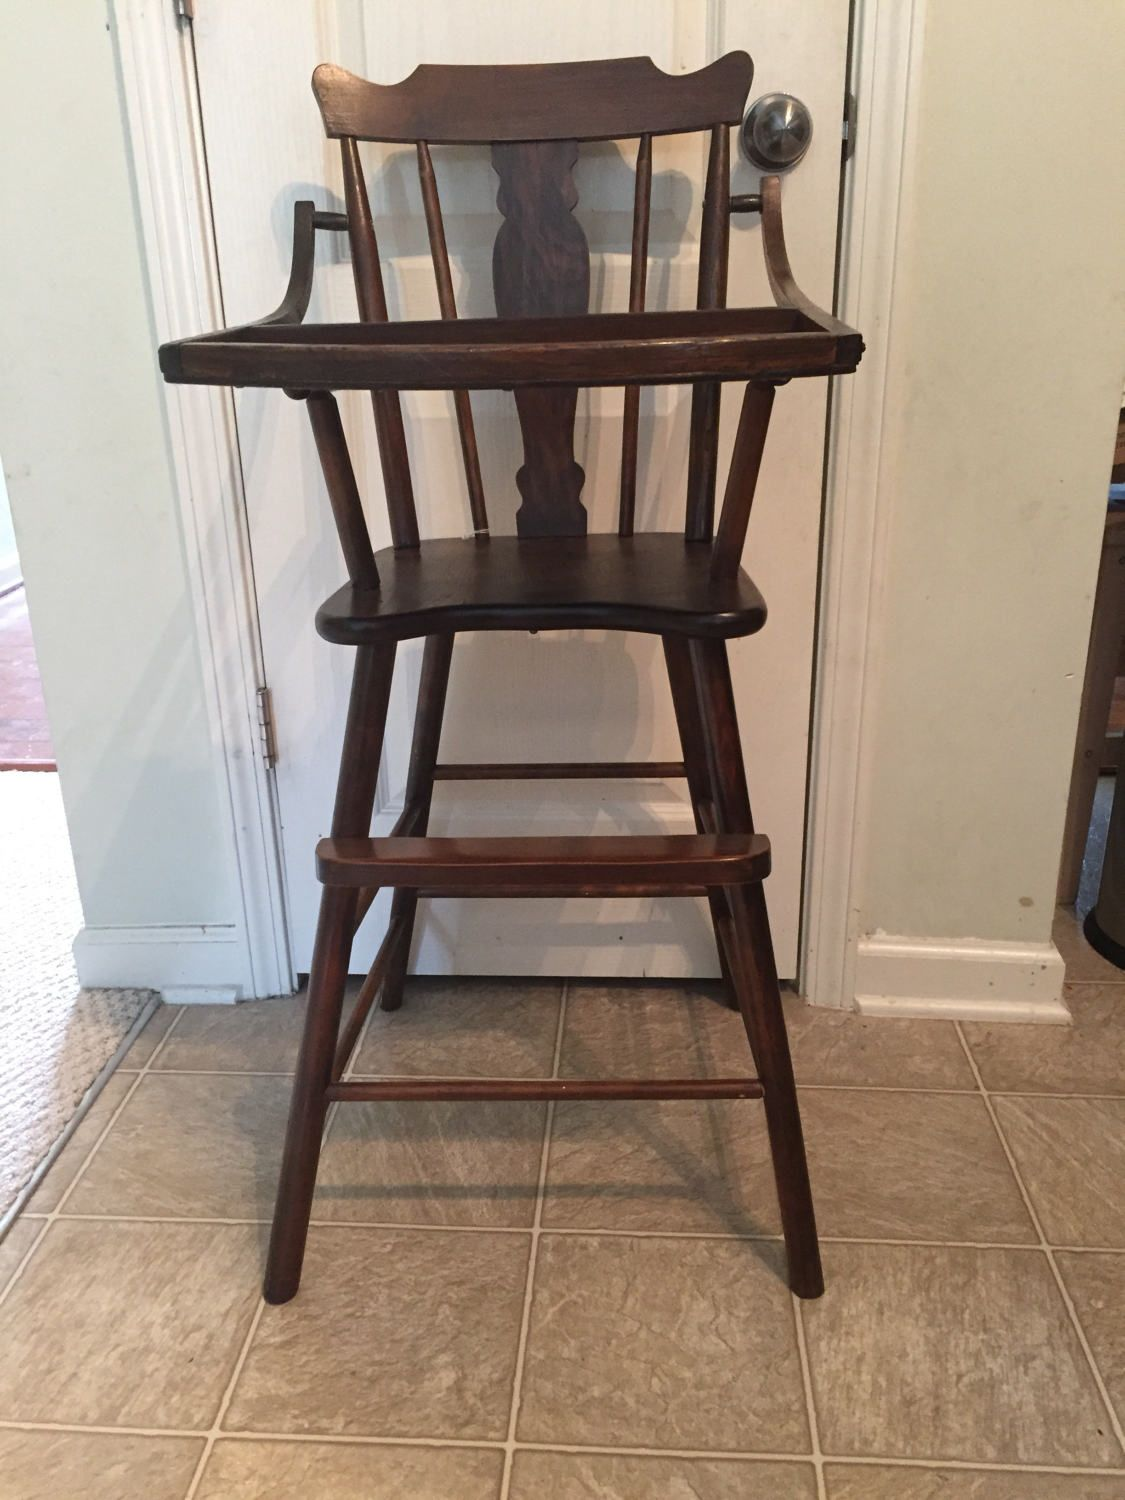 Painted wood high chair - Late 1800 S High Chair Vintage Wooden High Chair Jenny Lind Antique High Chair Painted